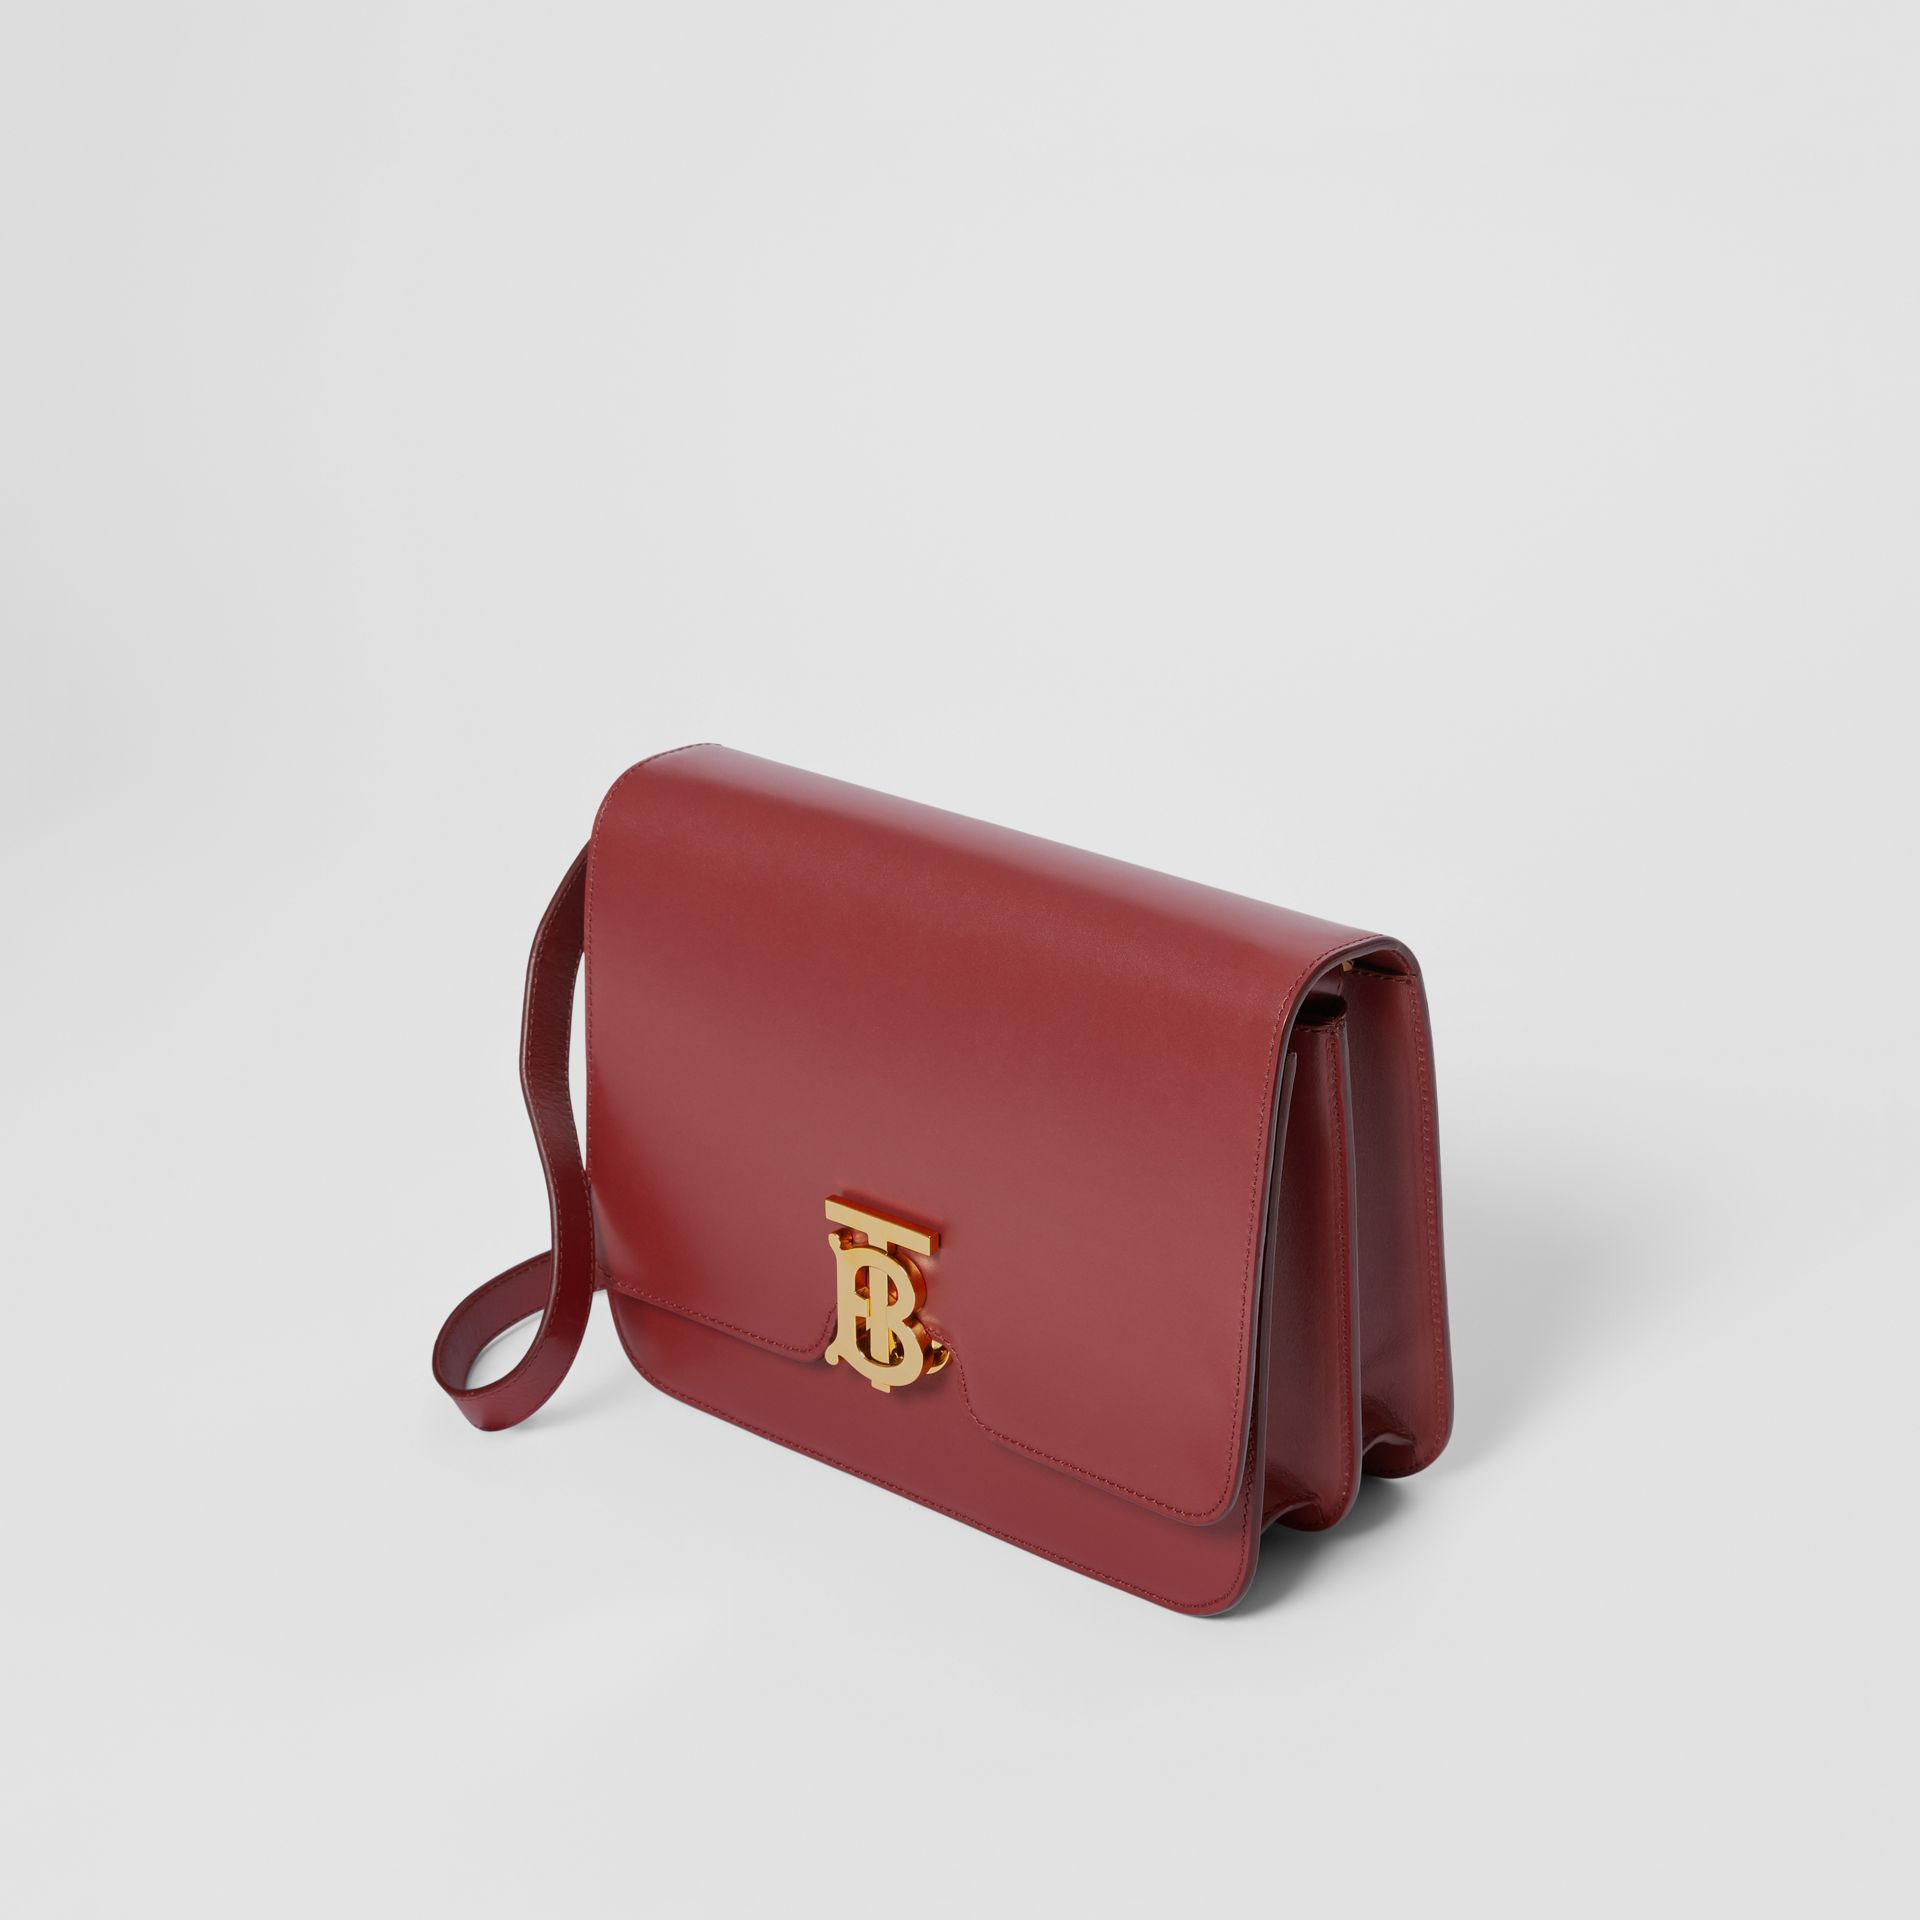 Medium Leather TB Bag in Crimson - Women | Burberry Hong Kong - gallery image 3